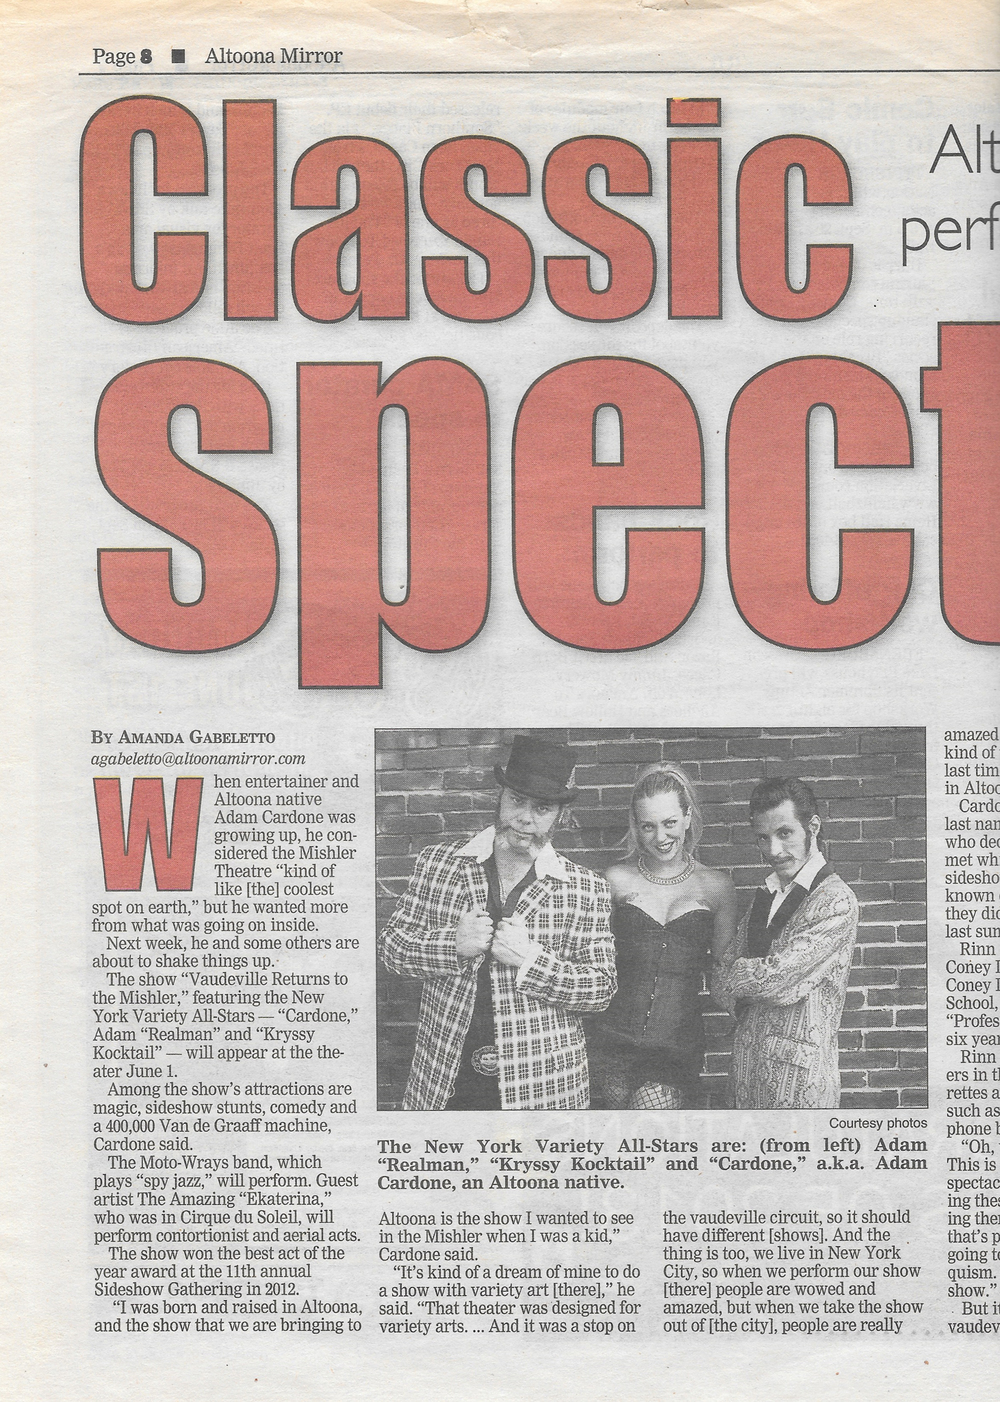 Altoona Mirror, Classic Spectacle, May 24, 2013